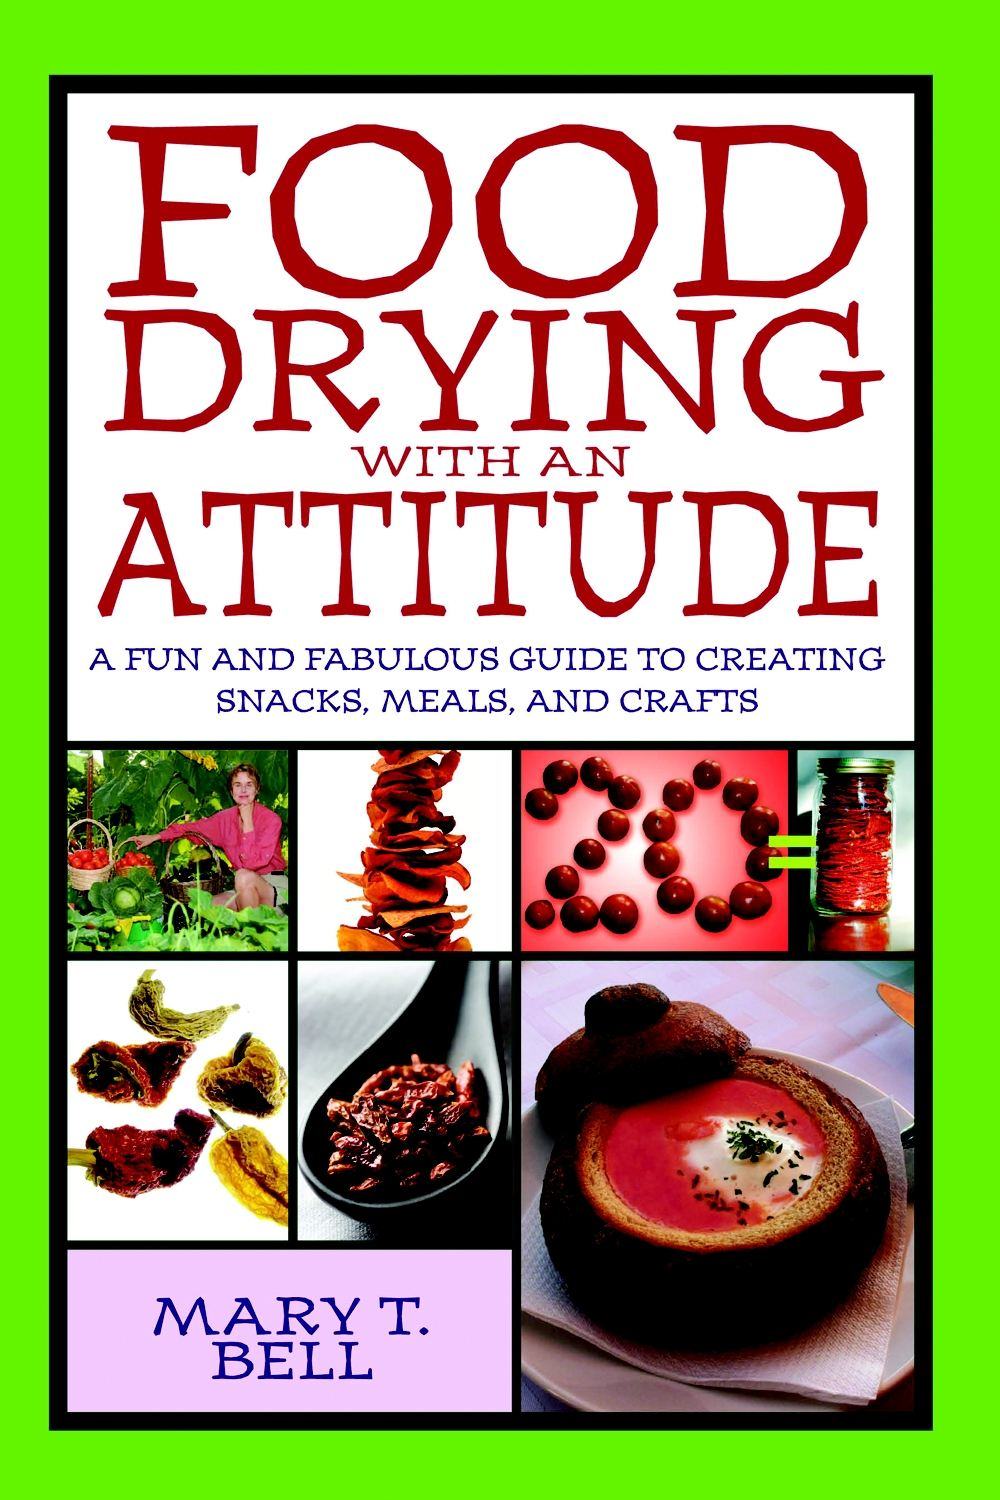 Food Drying With an Attitude: A Fun and Fabulous Guide to Creating Snacks, Meals, and Crafts By: Mary T. Bell